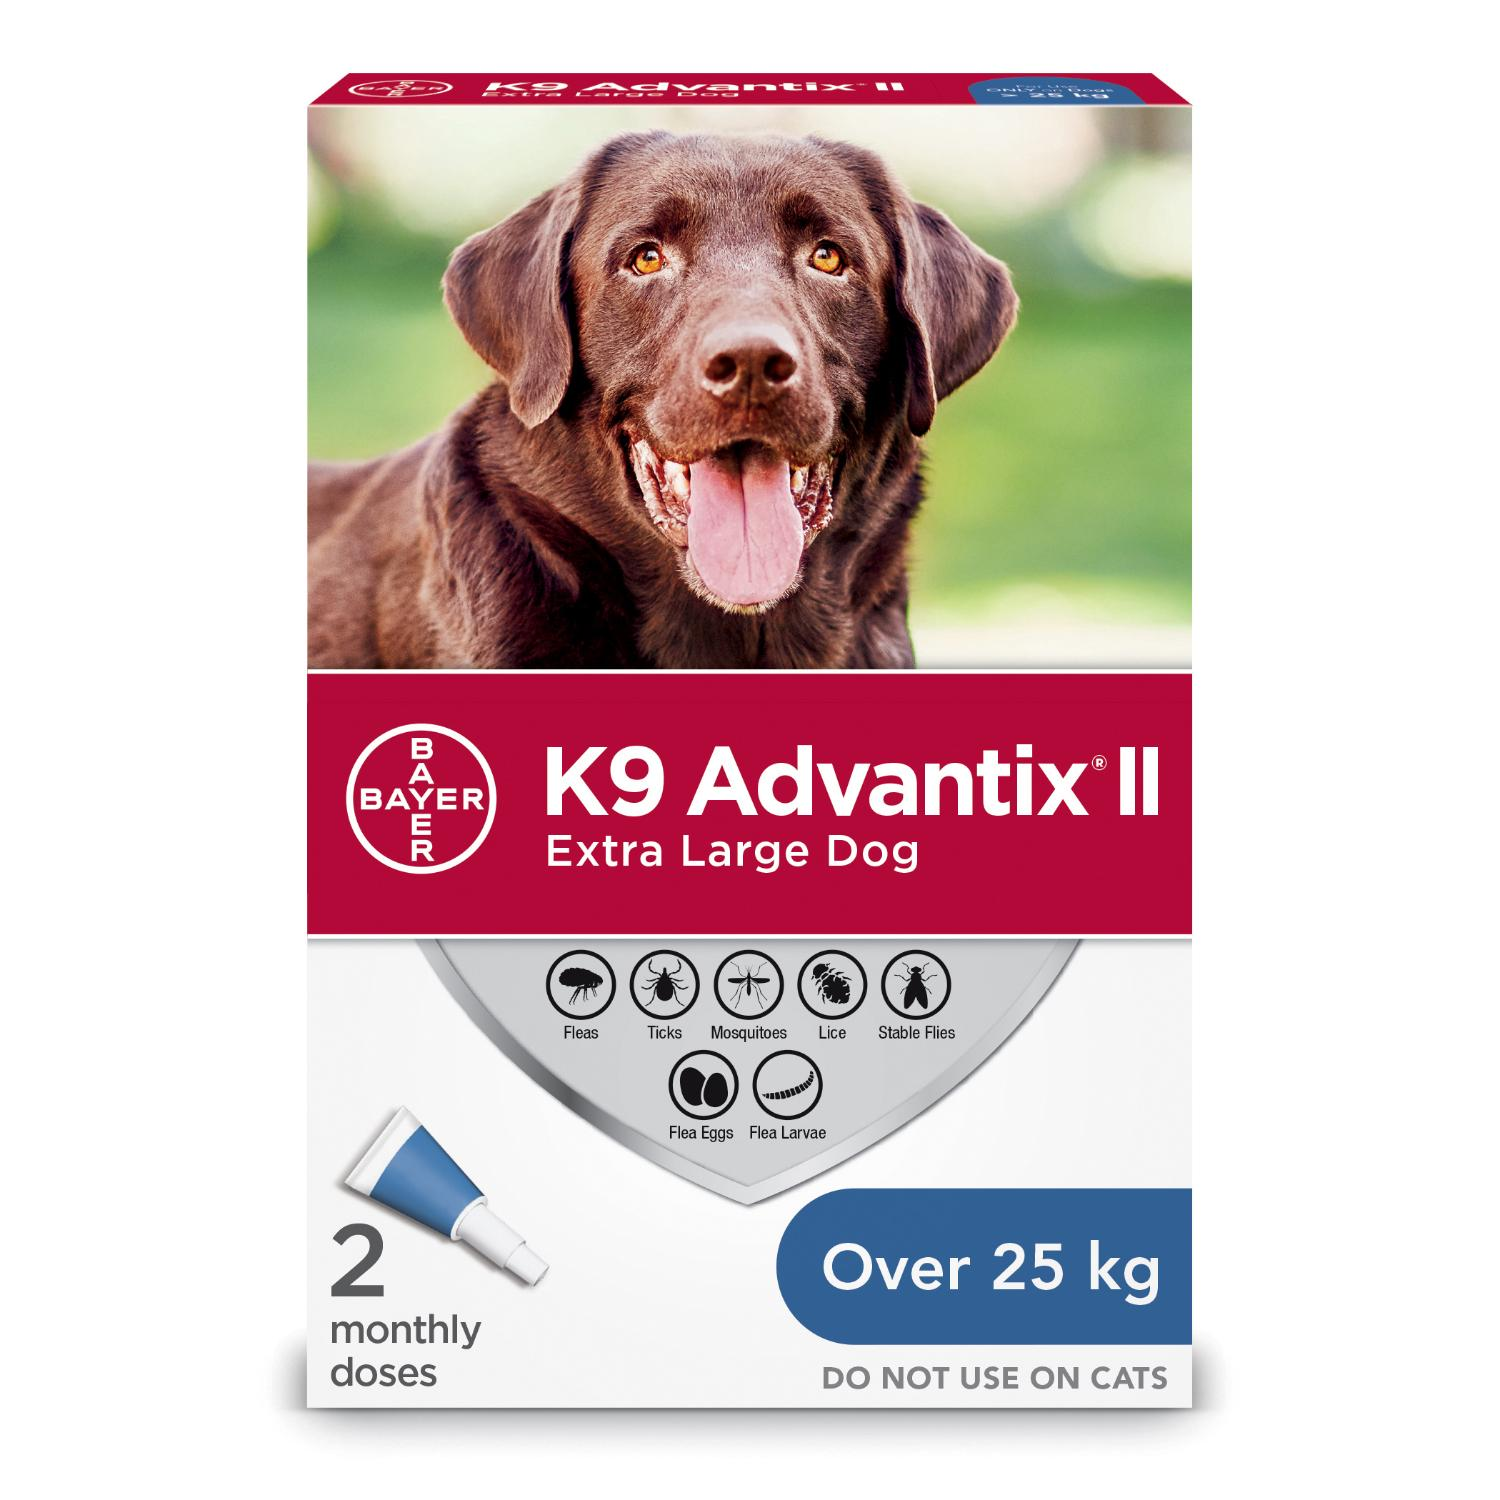 Bayer K9 Advantix II Flea Protection for Extra Large Dogs over 25-kg Image